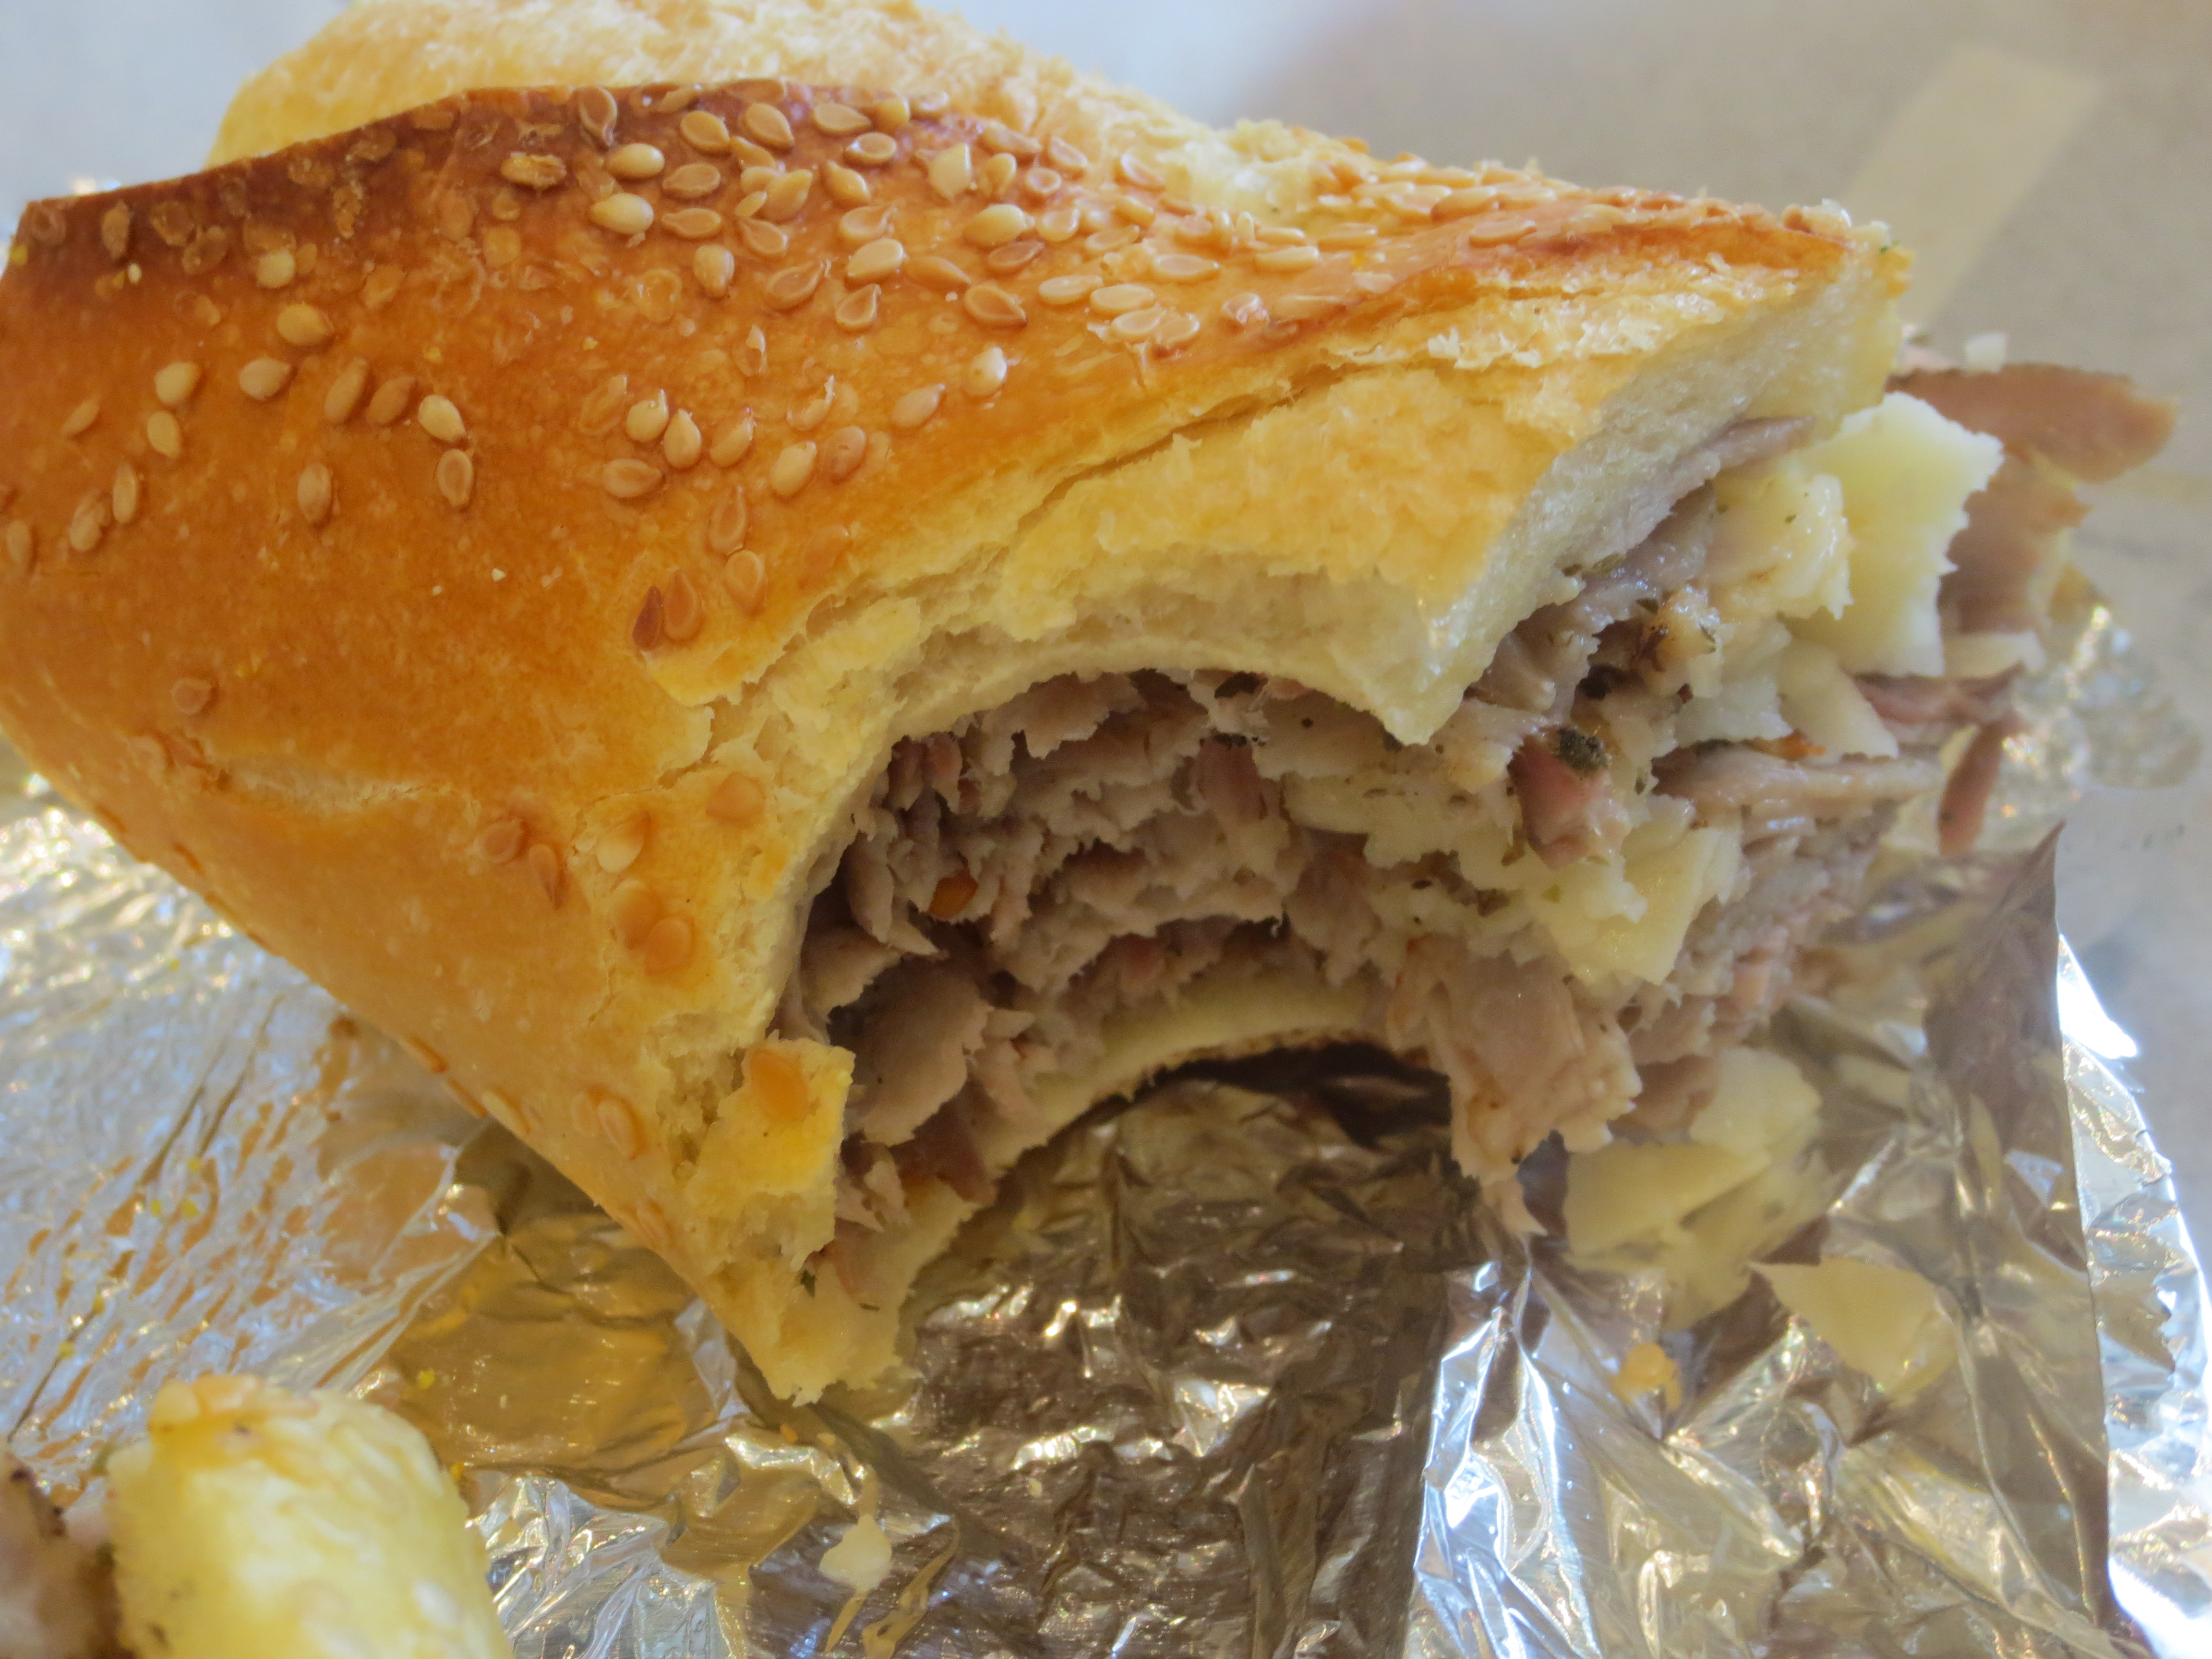 RJ's Sandwich- Washington Avenue